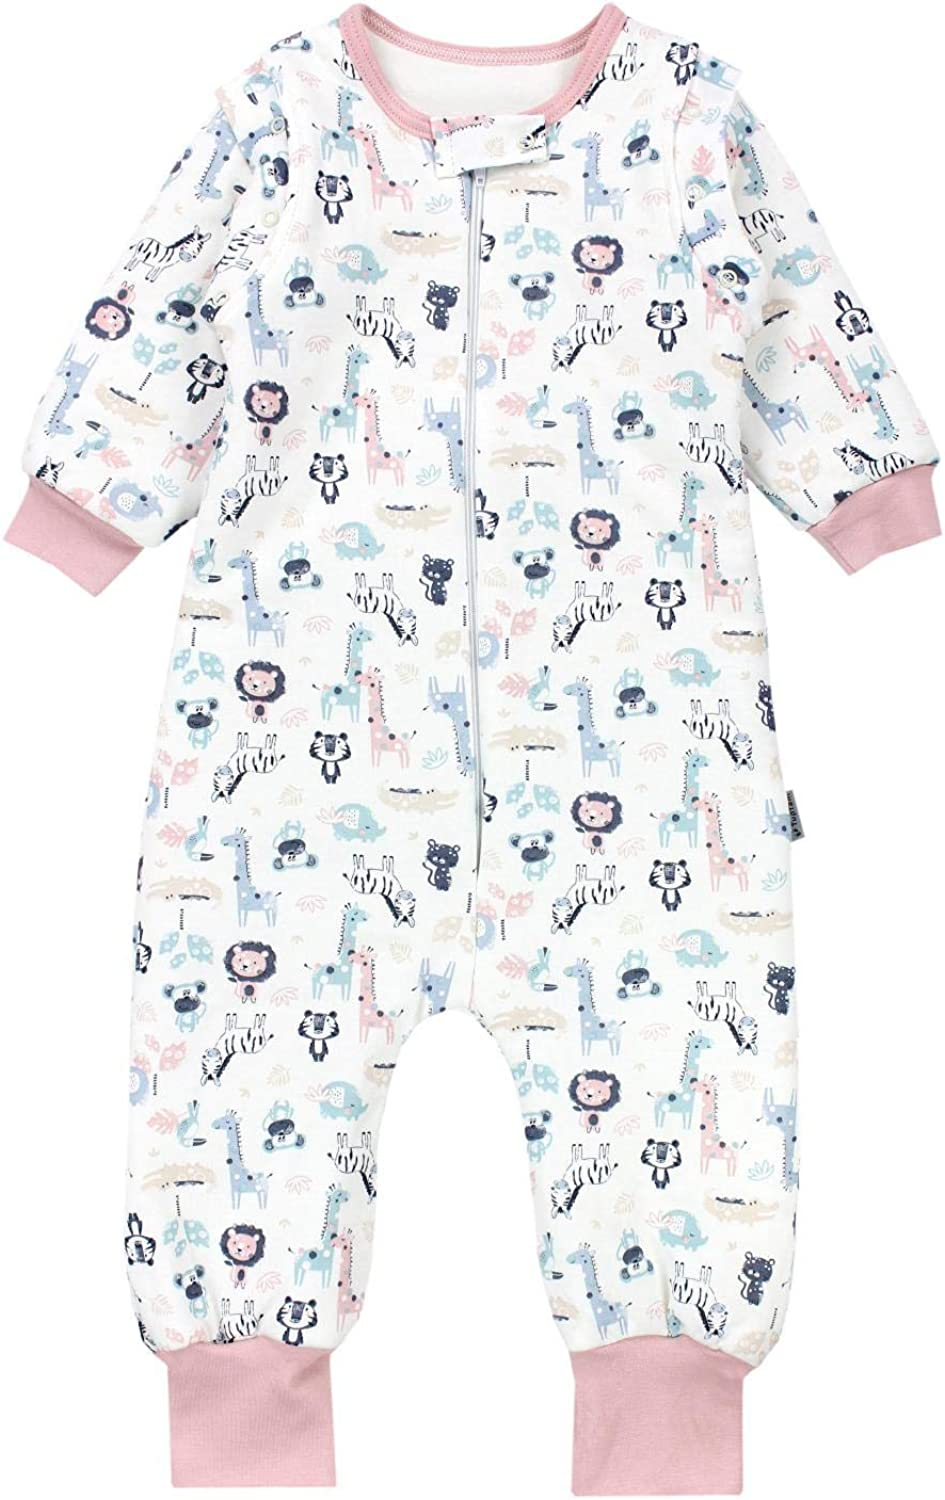 TupTam Baby Sleeping Bag with Legs and Sleeves 2.5 Tog